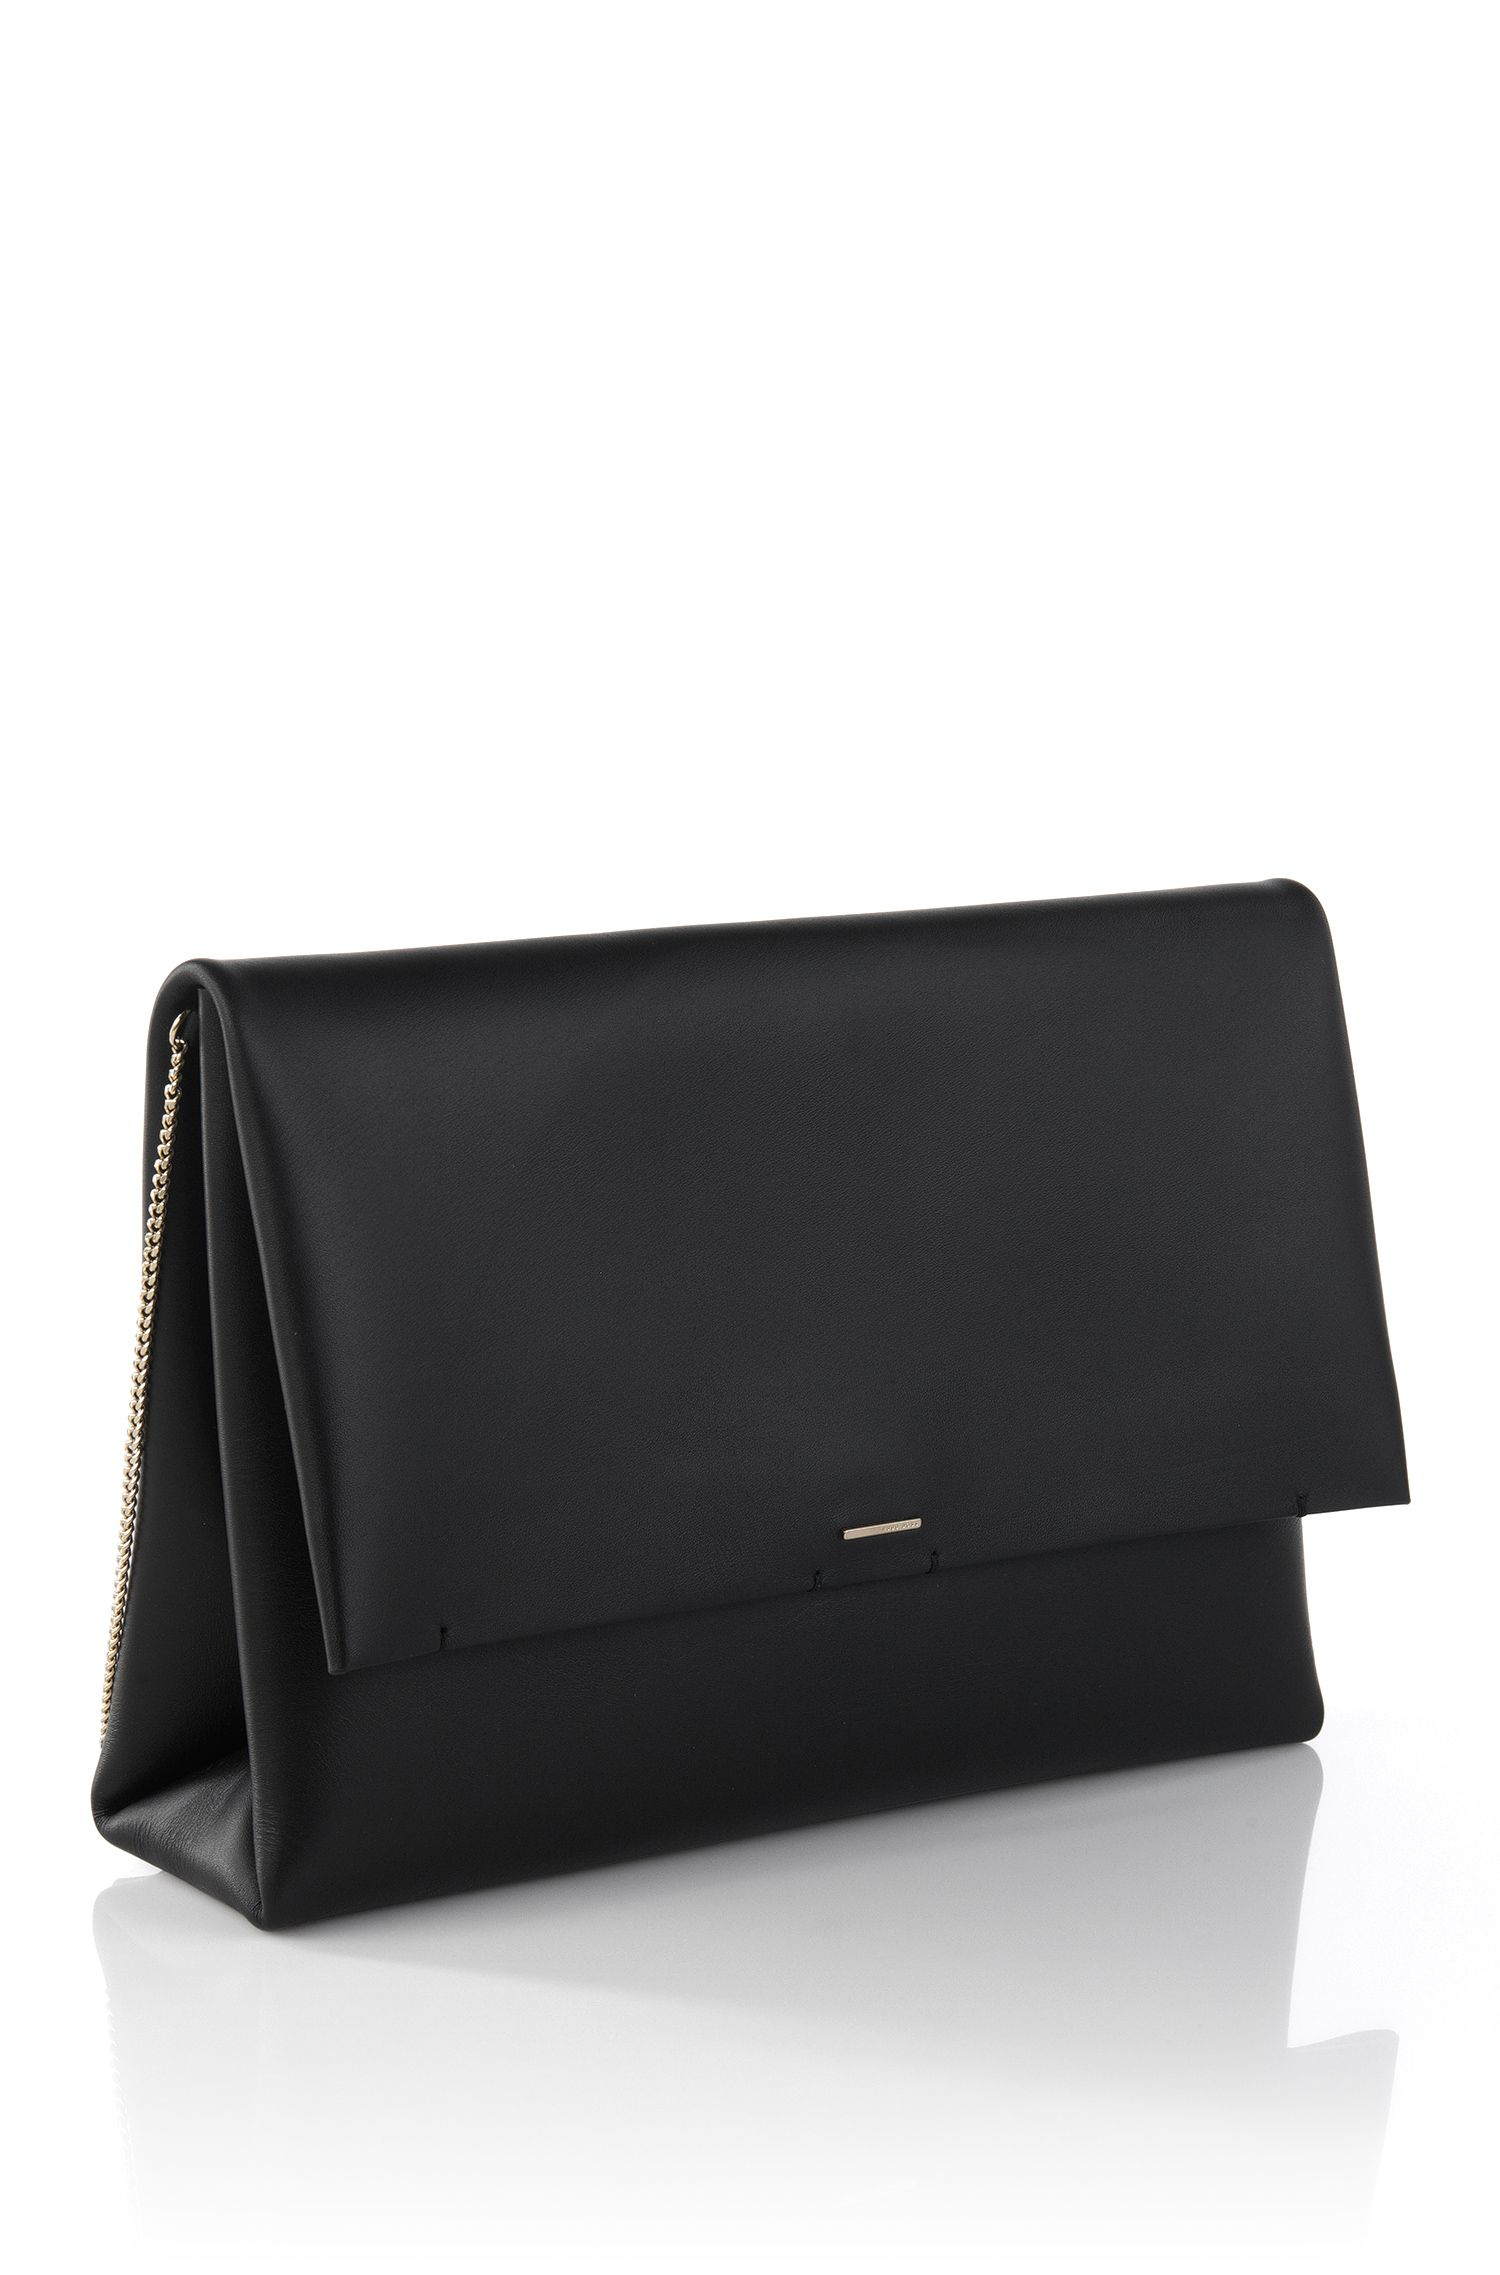 'Luxury Staple C' | Calfskin Clutch with Chain Strap